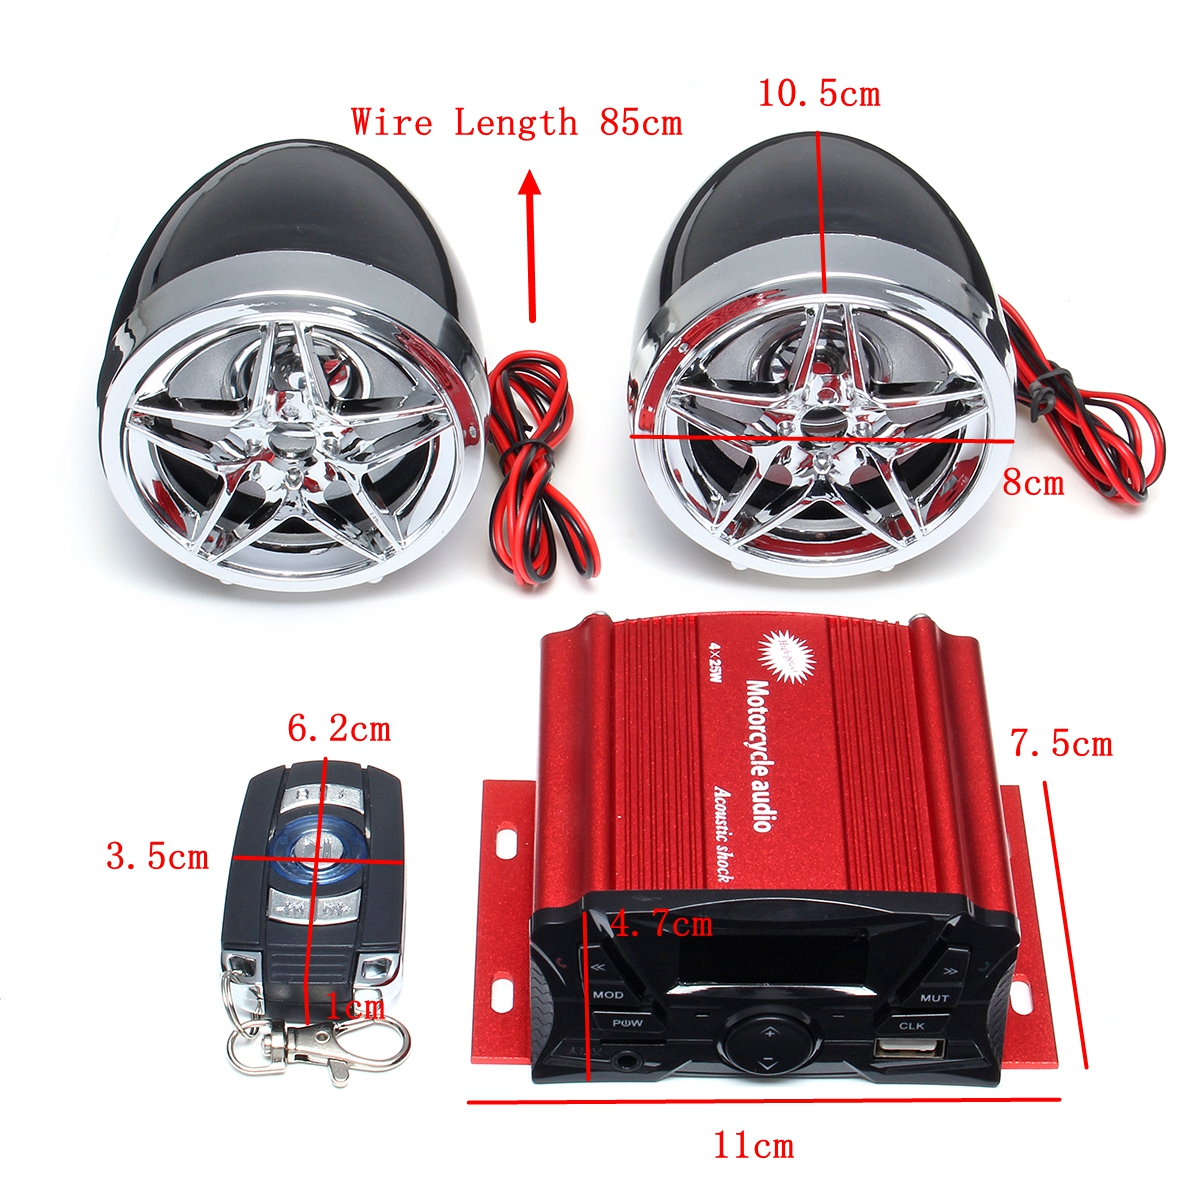 SKUniversal Motorcycle Audio Remote Sound System Support SD USB MP3 FM Radio Player Anti-Theft